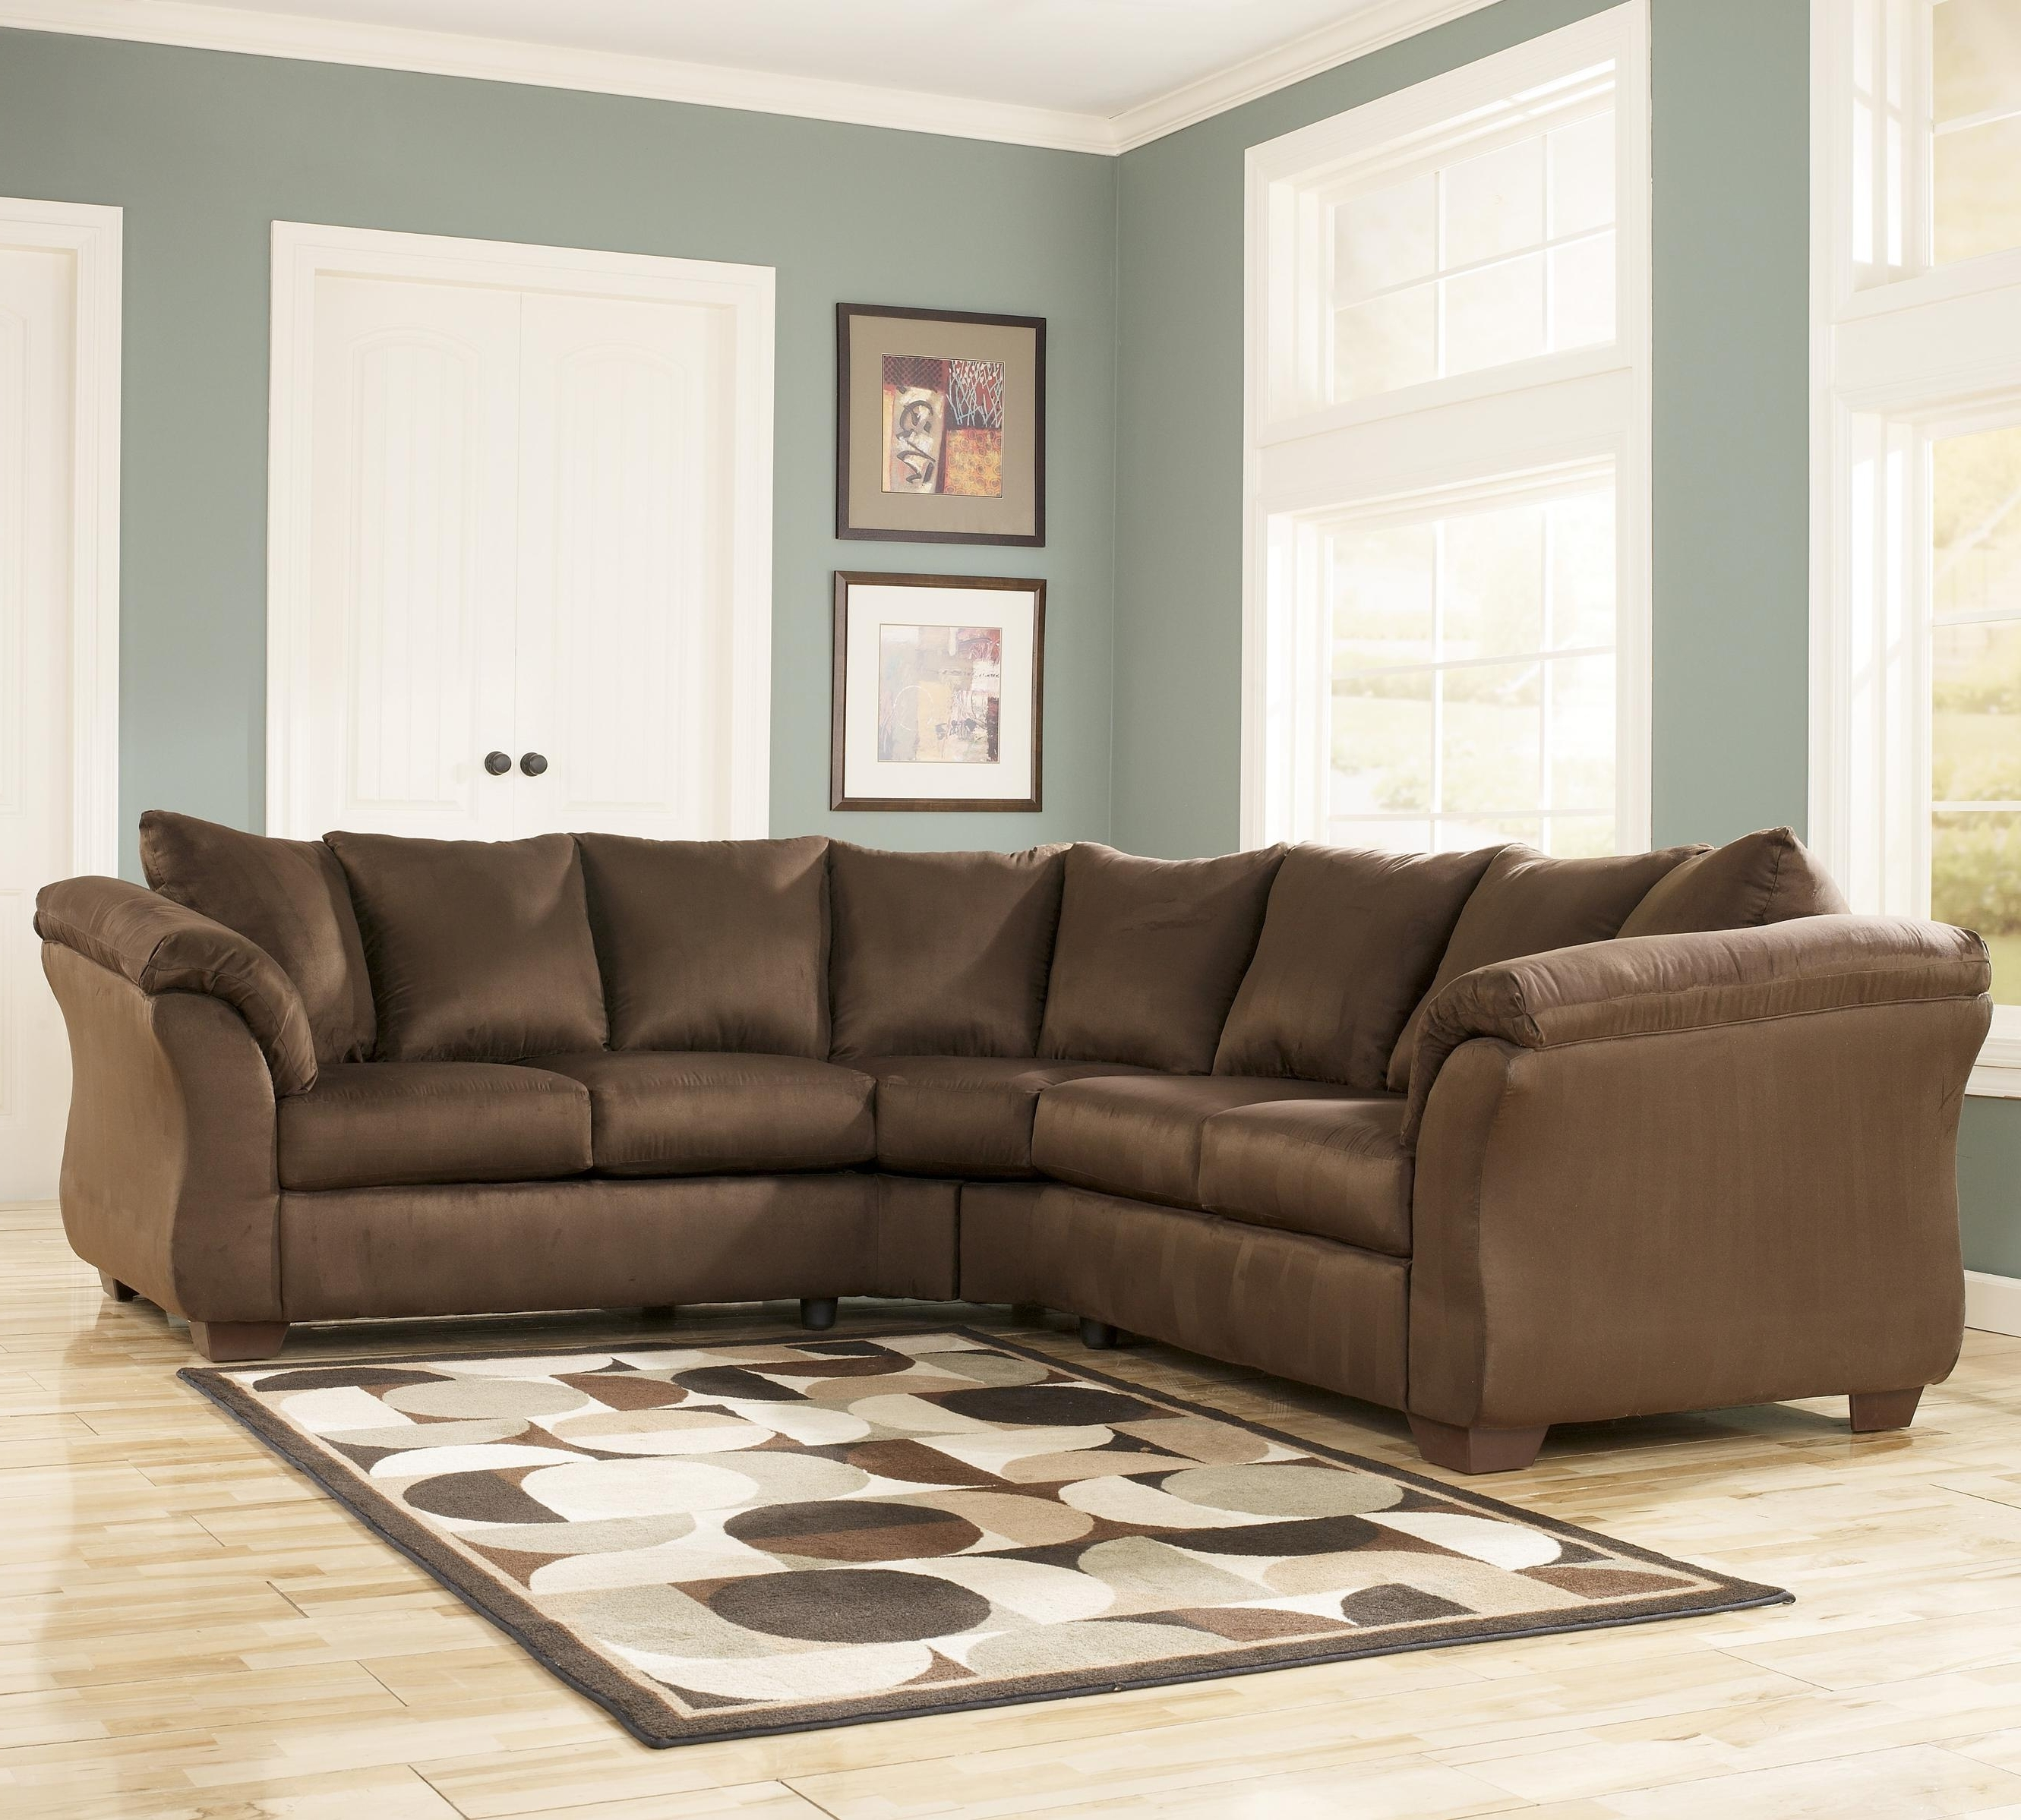 Best And Newest Gardiners Sectional Sofas Pertaining To Contemporary Sectional Sofa With Sweeping Pillow Armssignature (View 1 of 20)